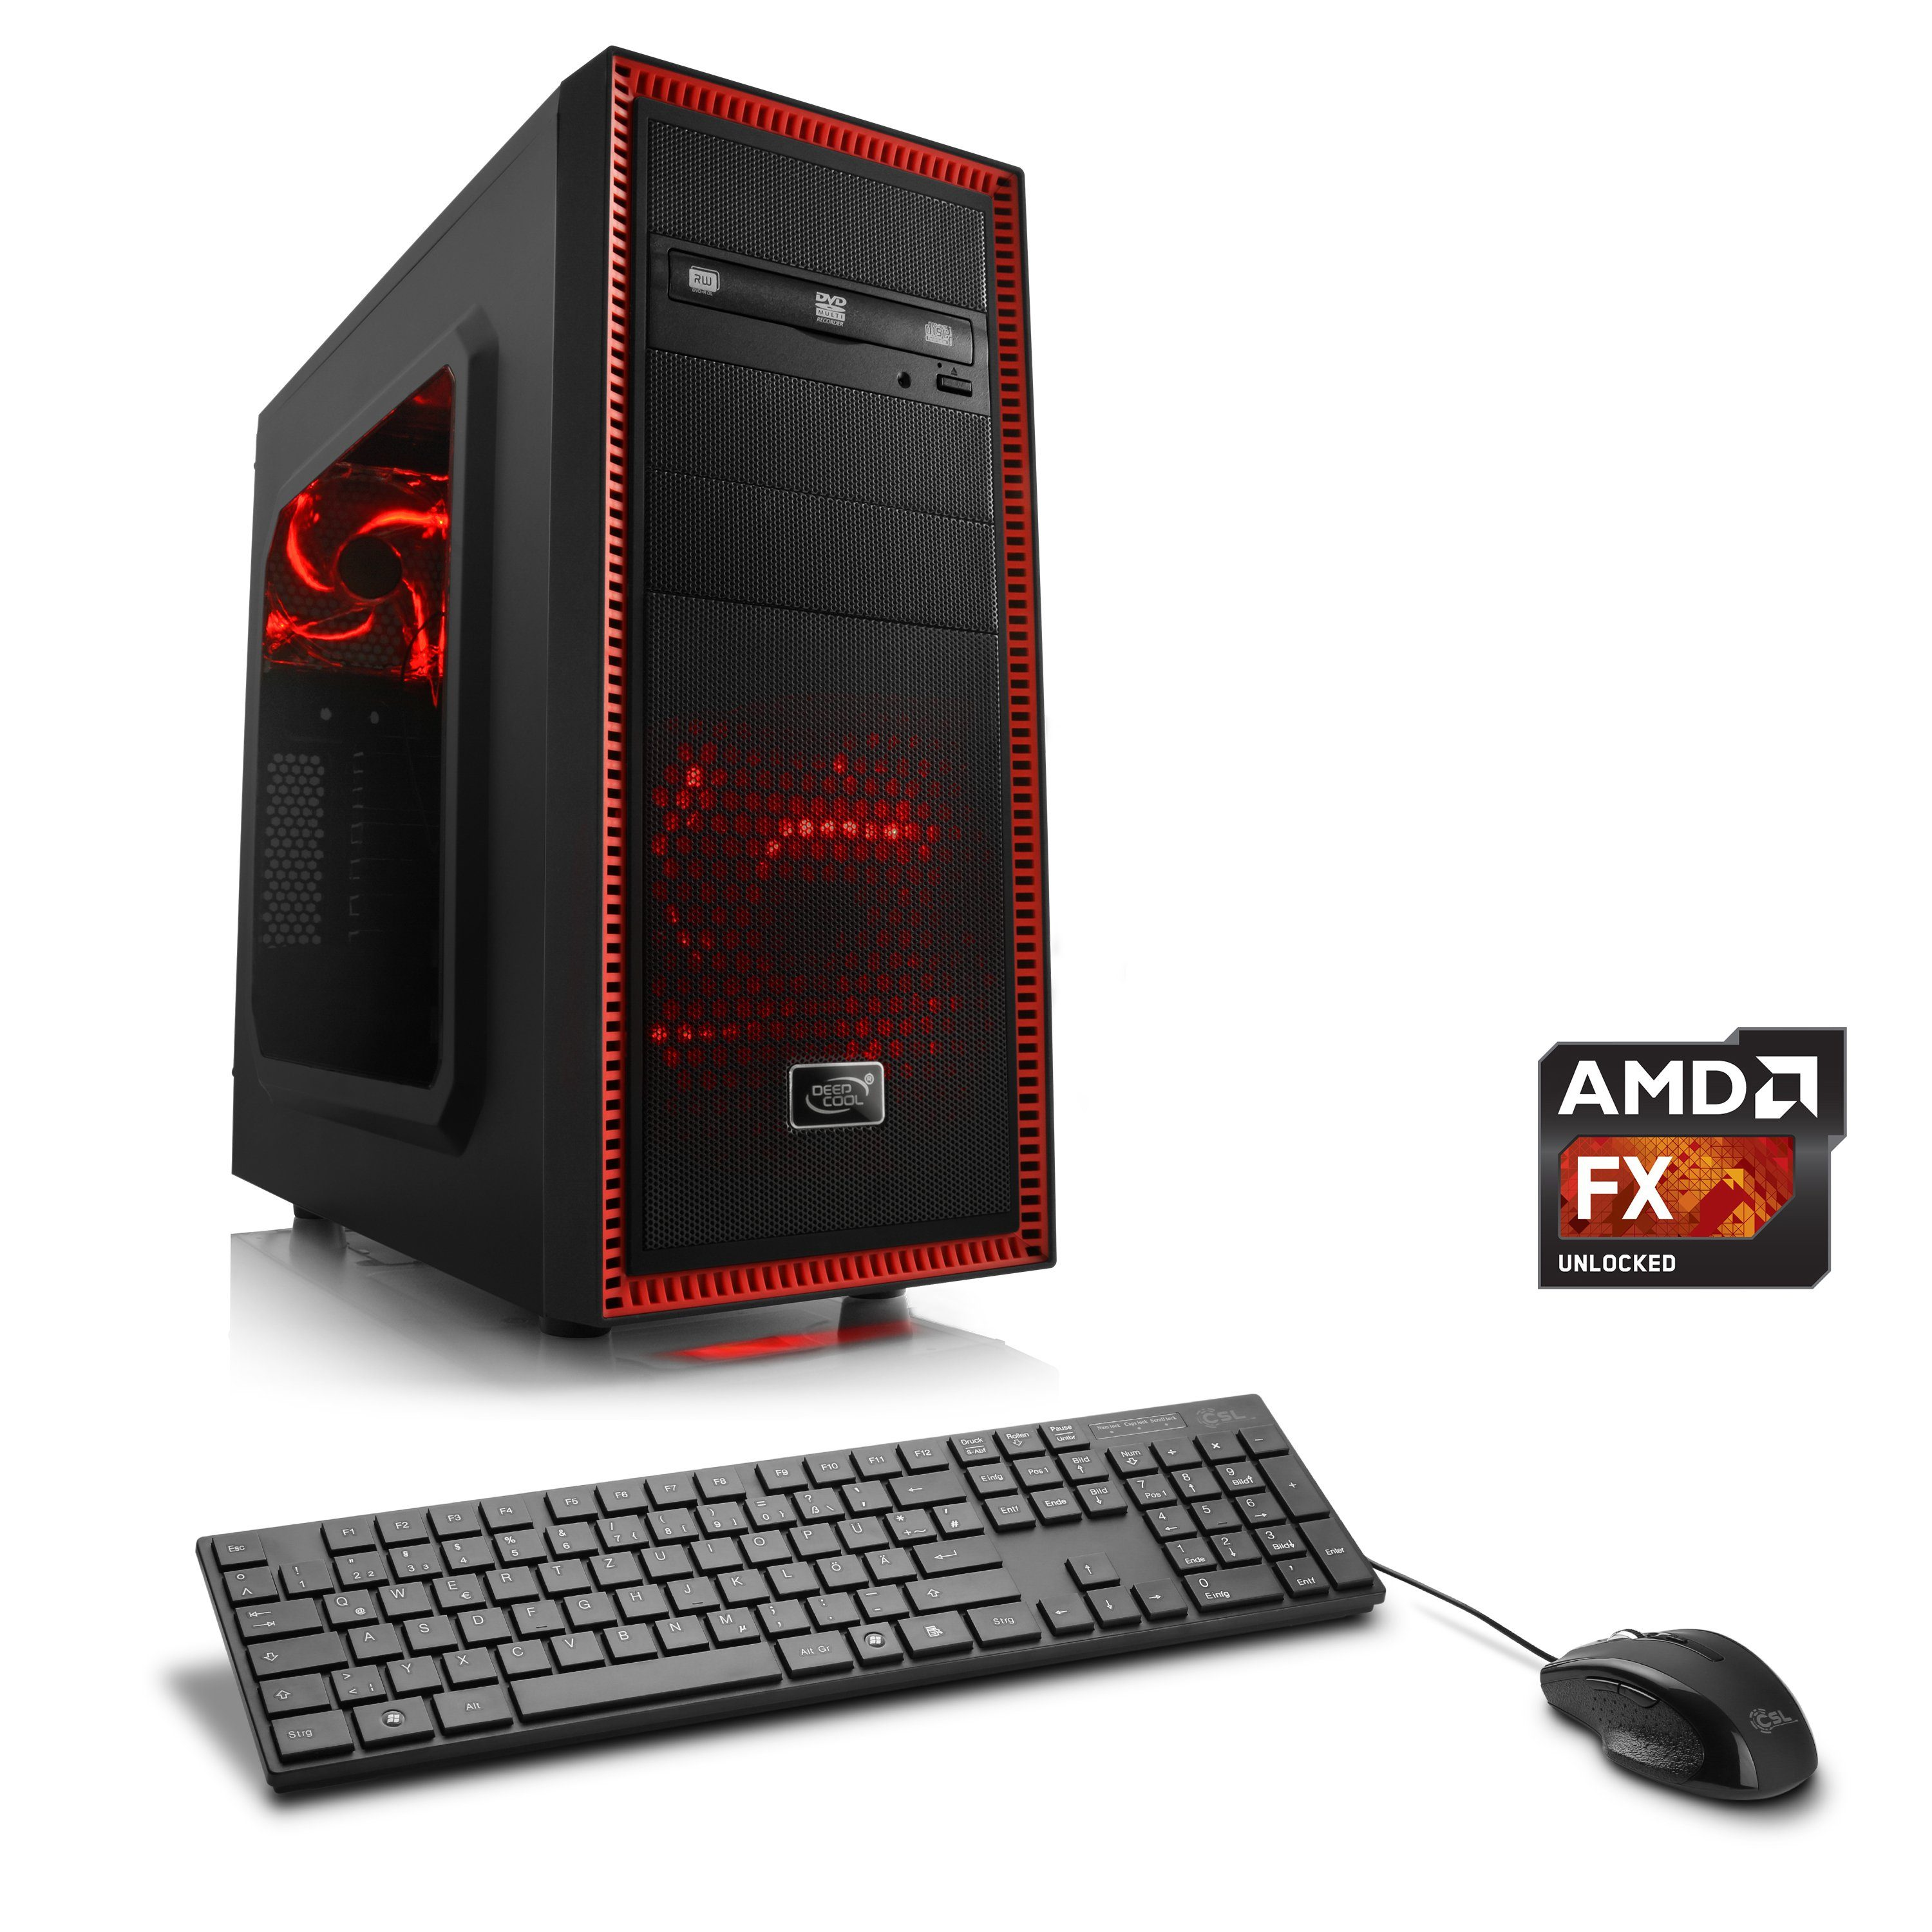 CSL Multimedia PC | AMD FX-8370E | Radeon R5 230 | 8 GB RAM | WLAN »Sprint T6823 Windows 10 Pro«